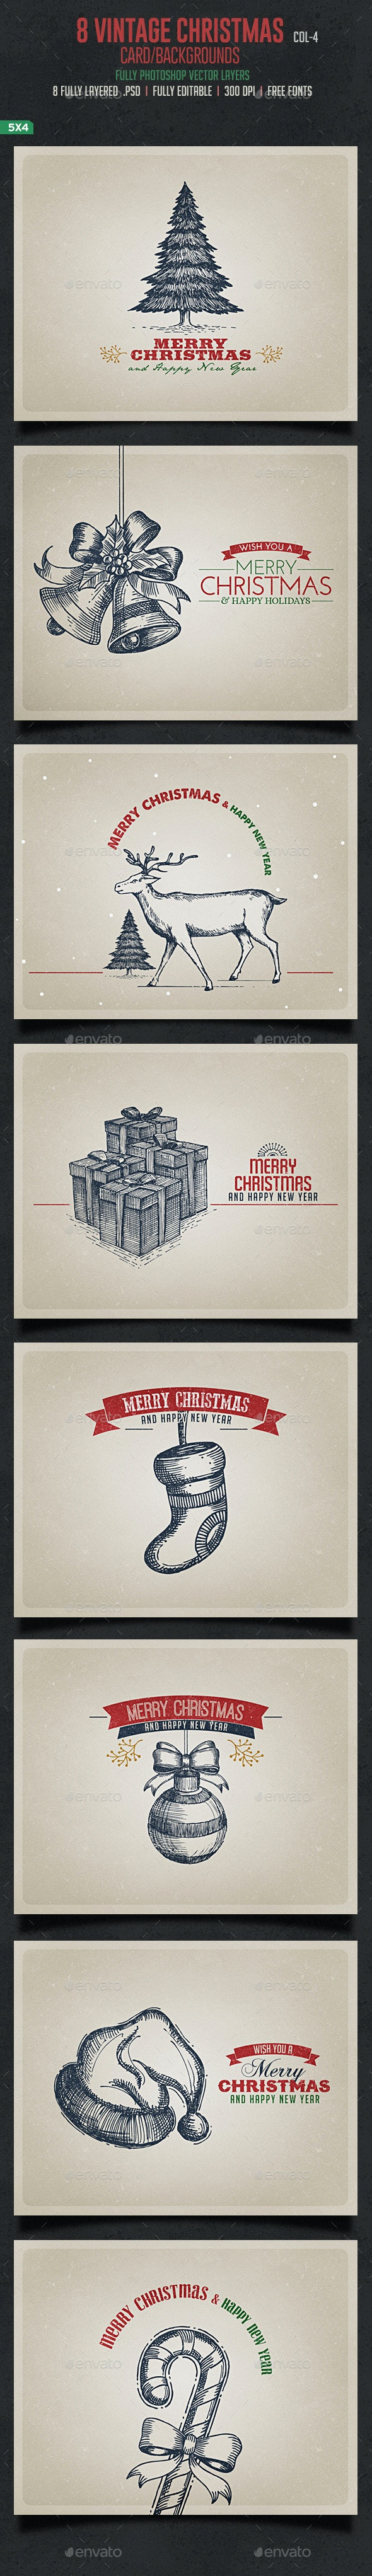 Vintage Christmas Cards / Backgrouds - Backgrounds Graphics